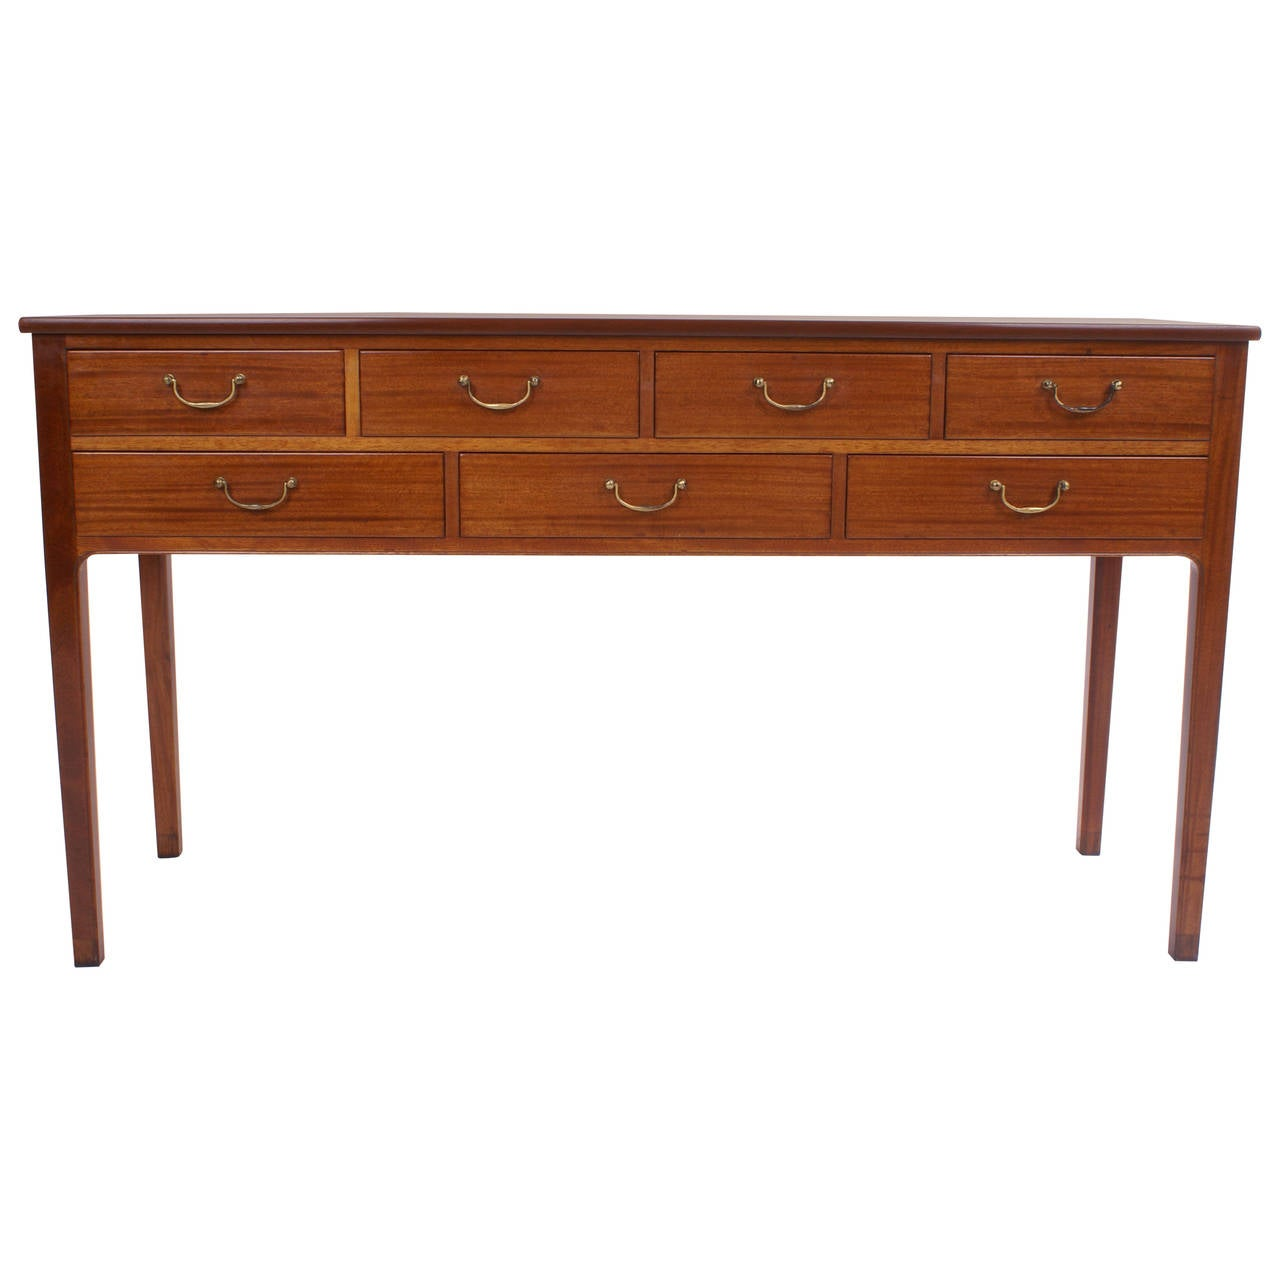 Ole wanscher server table for a j iversen at 1stdibs - Archives departementales 33 tables decennales ...